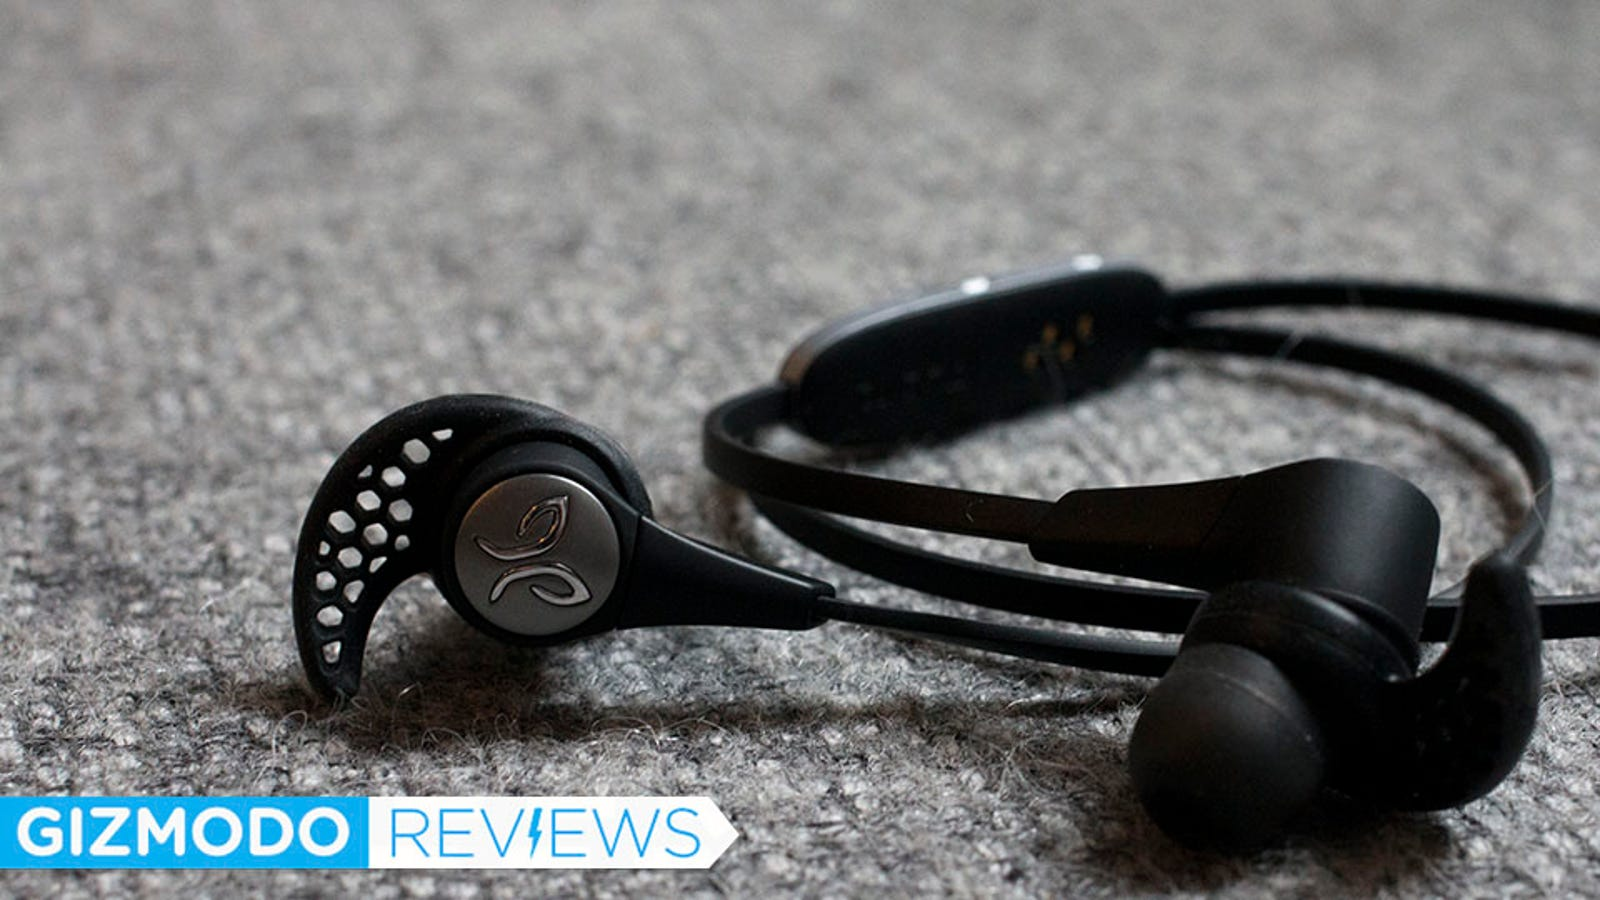 headphone cord management - Jaybird X3 Review: A Wireless Earbud Grows Up